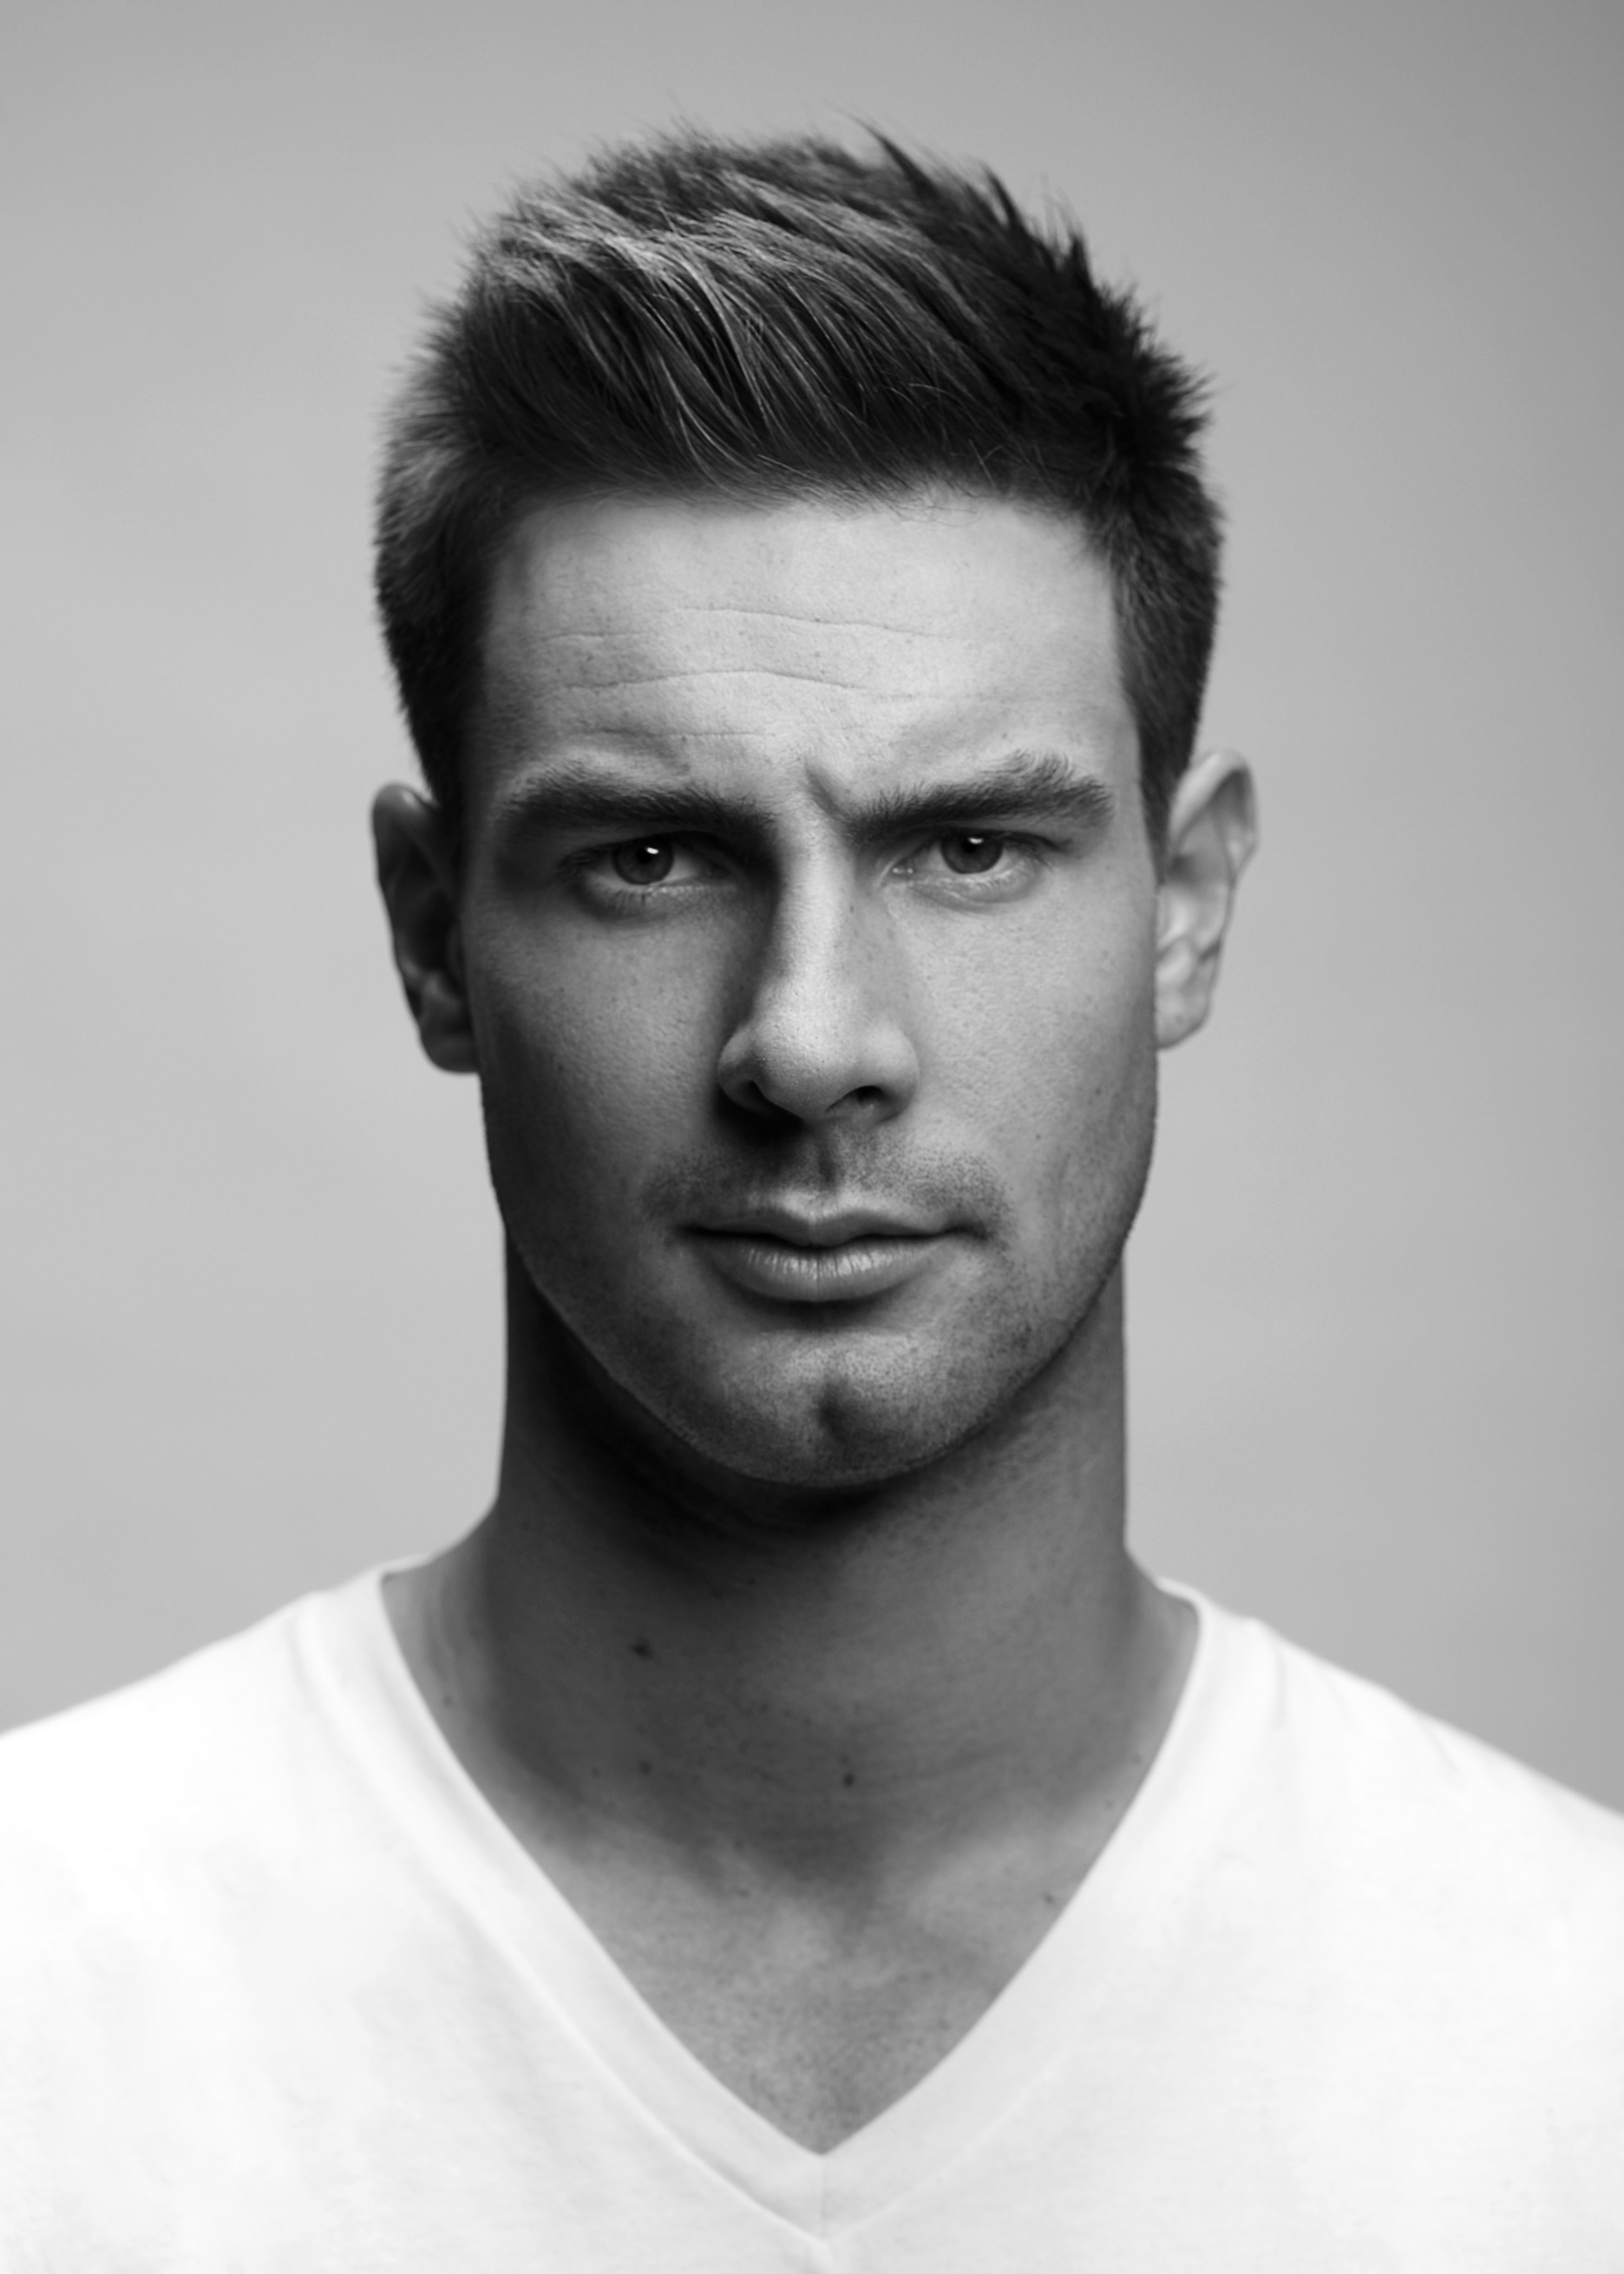 American Crew Hairstyles for Men American Crew Hairstyles